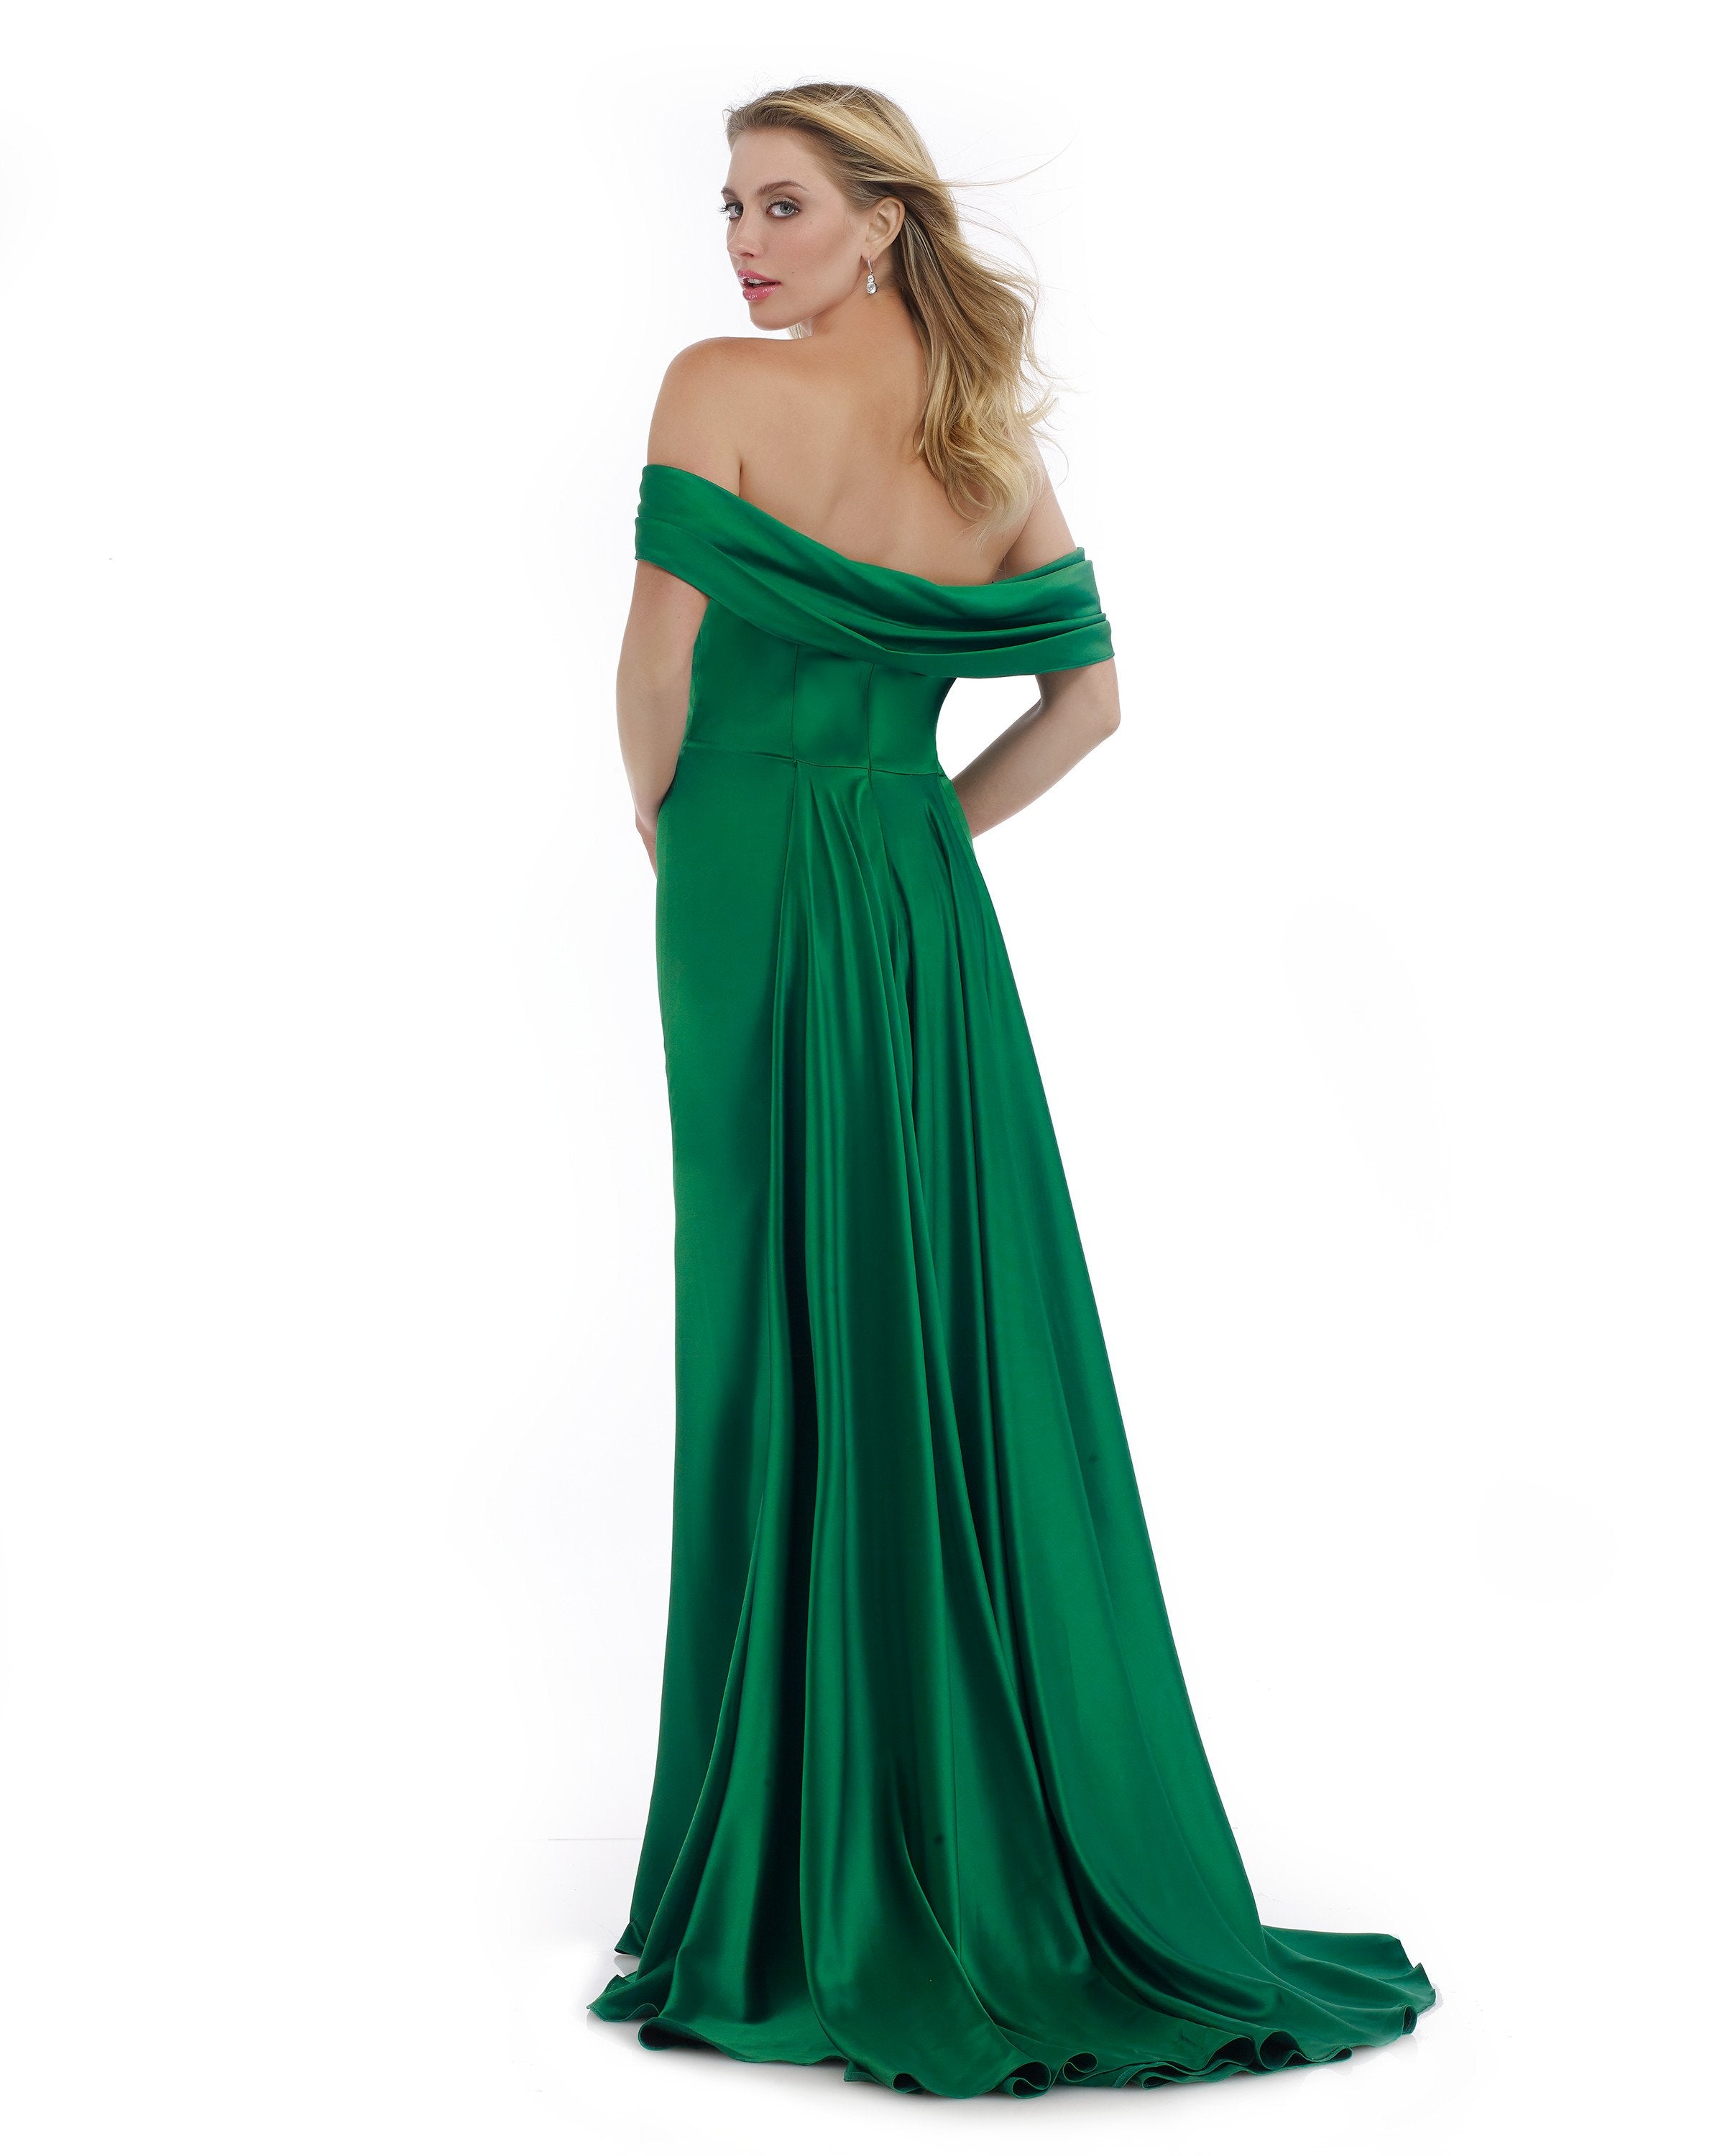 Morrell Maxie - 16014 Off-Shoulder Satin Charmeuse Trumpet Dress in Green